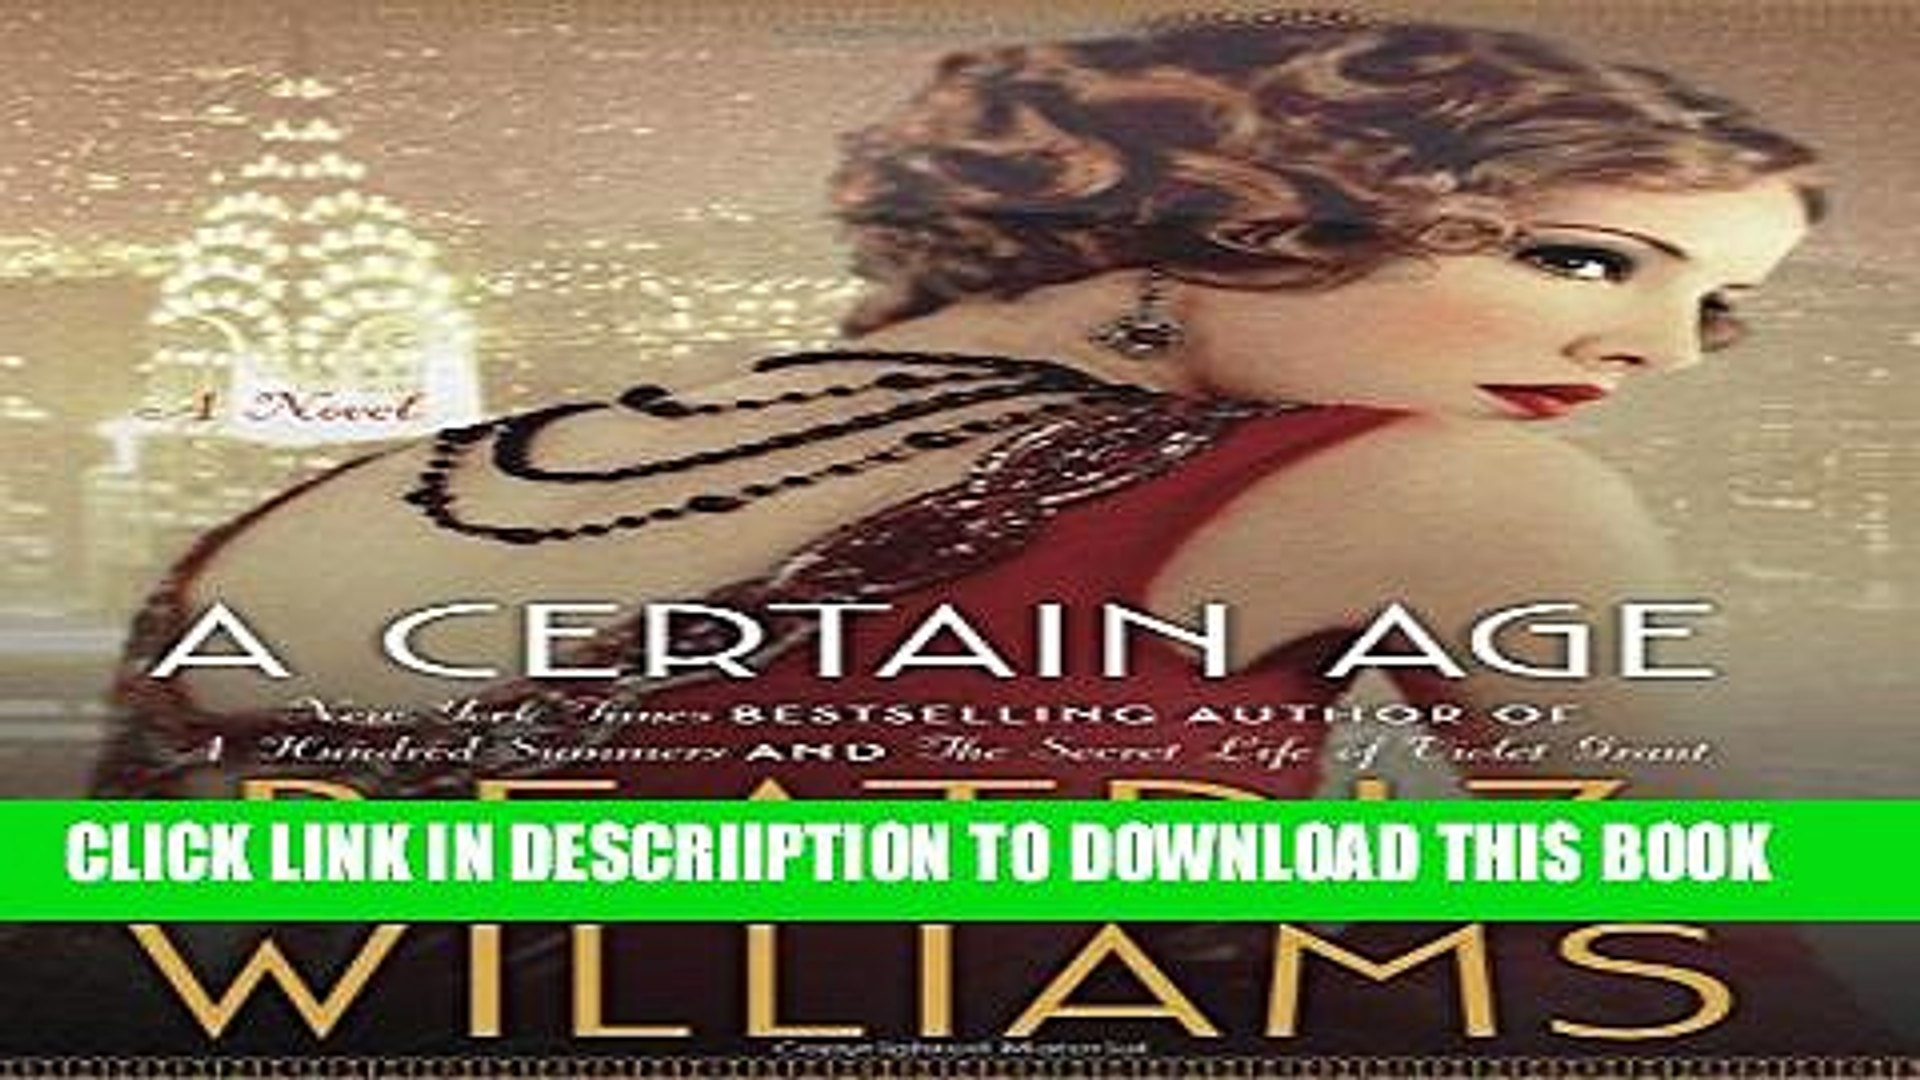 [New] A Certain Age: A Novel Exclusive Full Ebook